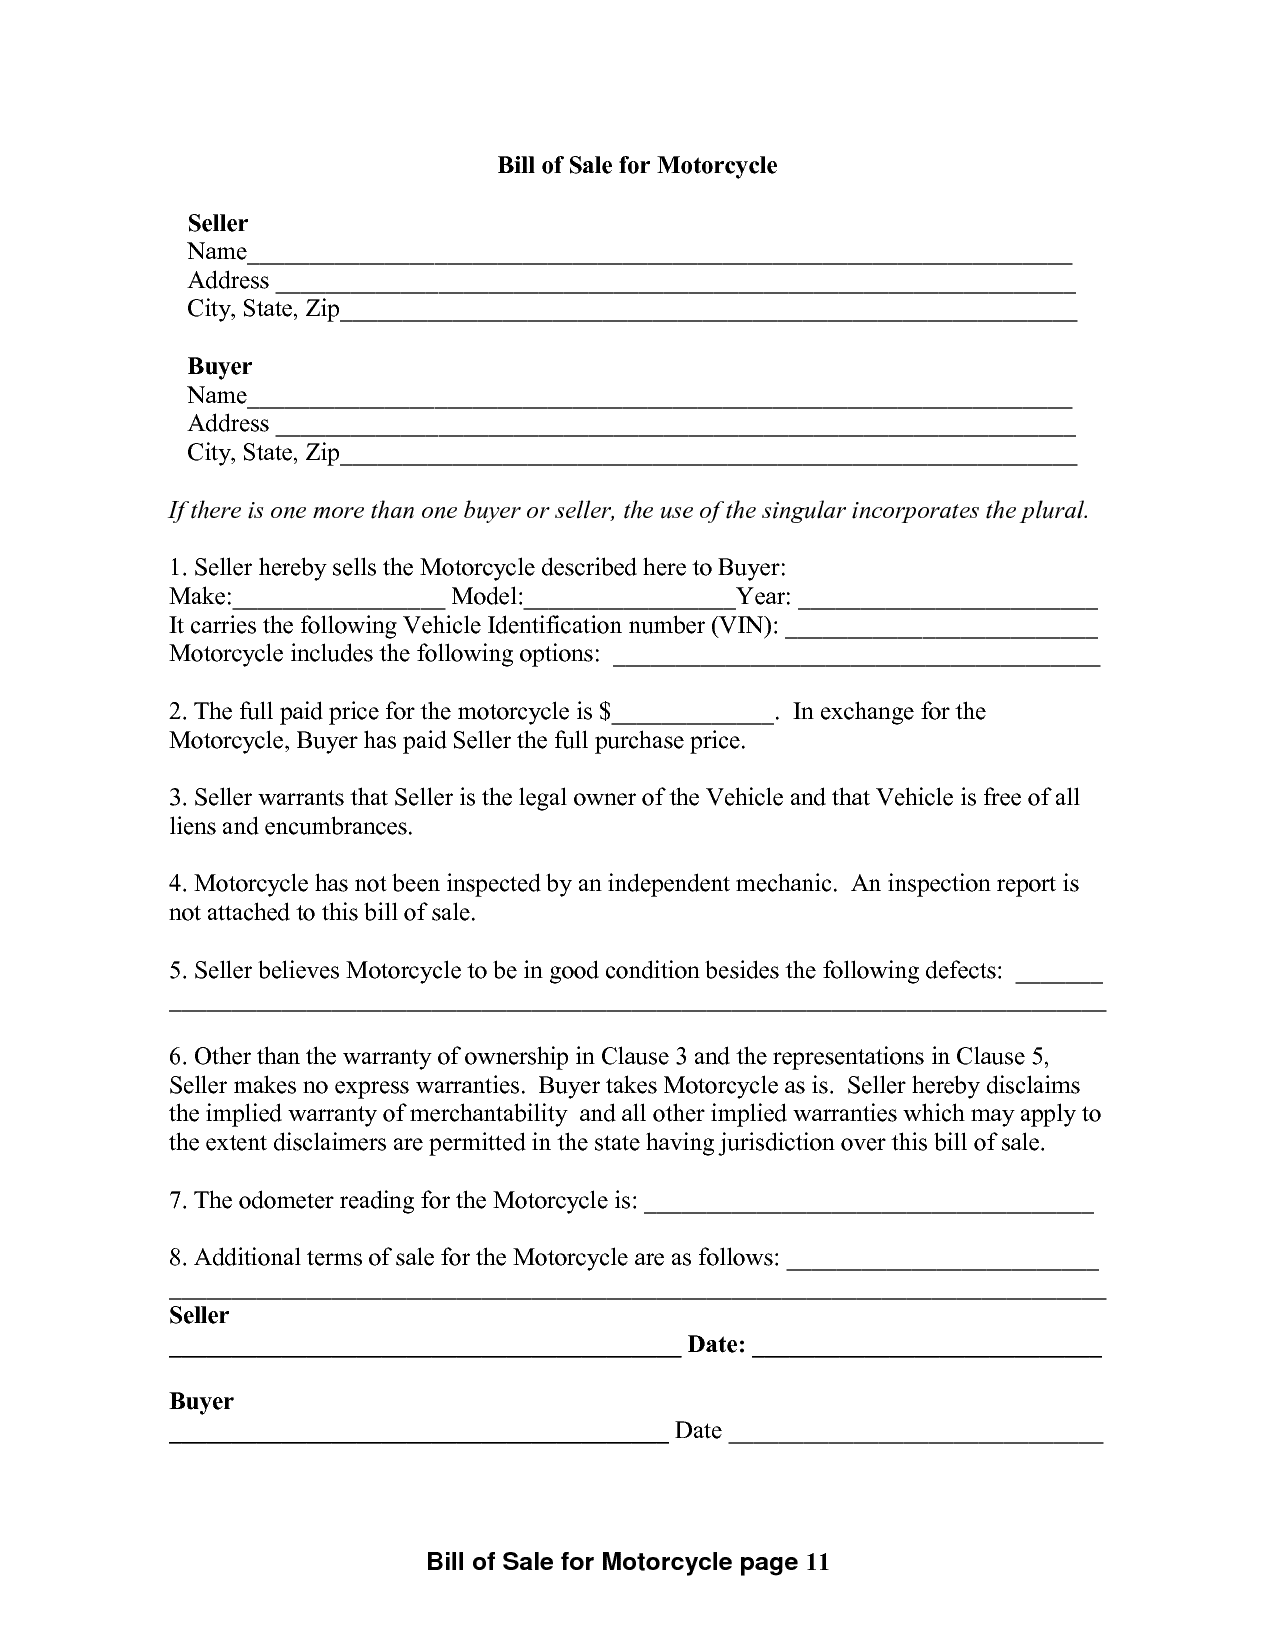 Atv bill of sale form template and atv bill of sale pdf